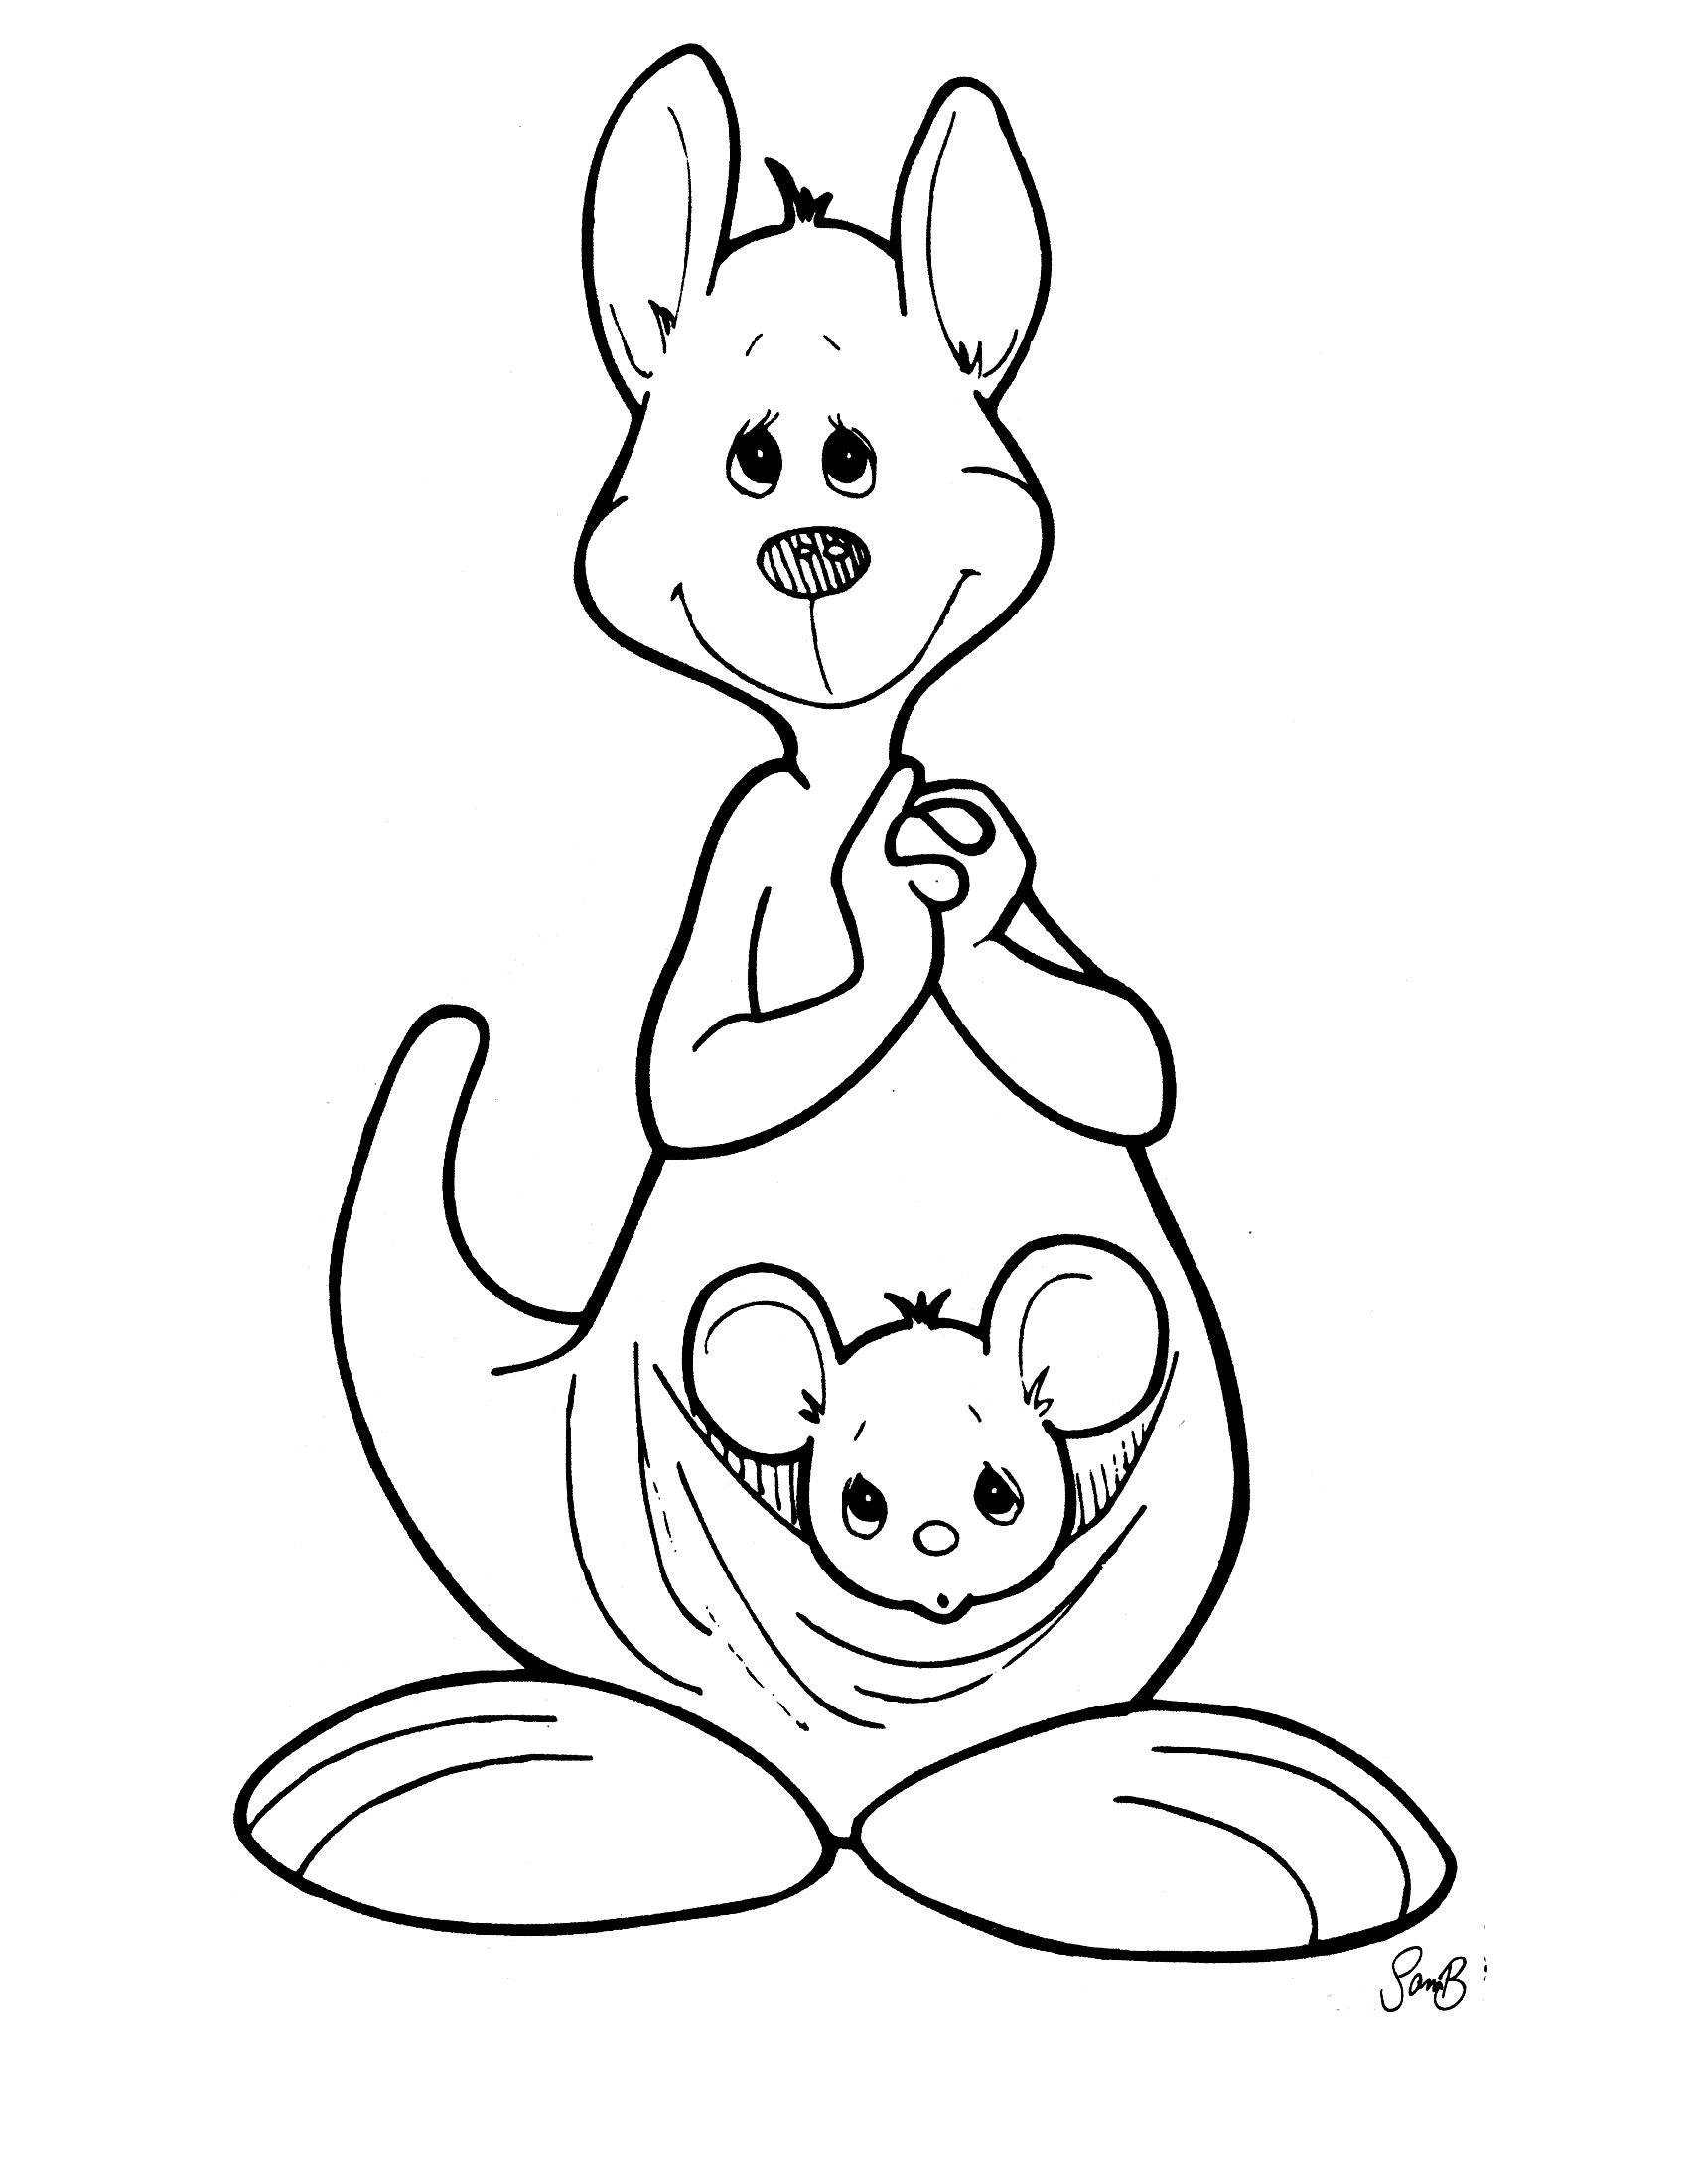 Pritable Precious Moments Coloring Pages Coloring Me Precious Moments Coloring Pages Monkey Coloring Pages Coloring Pages